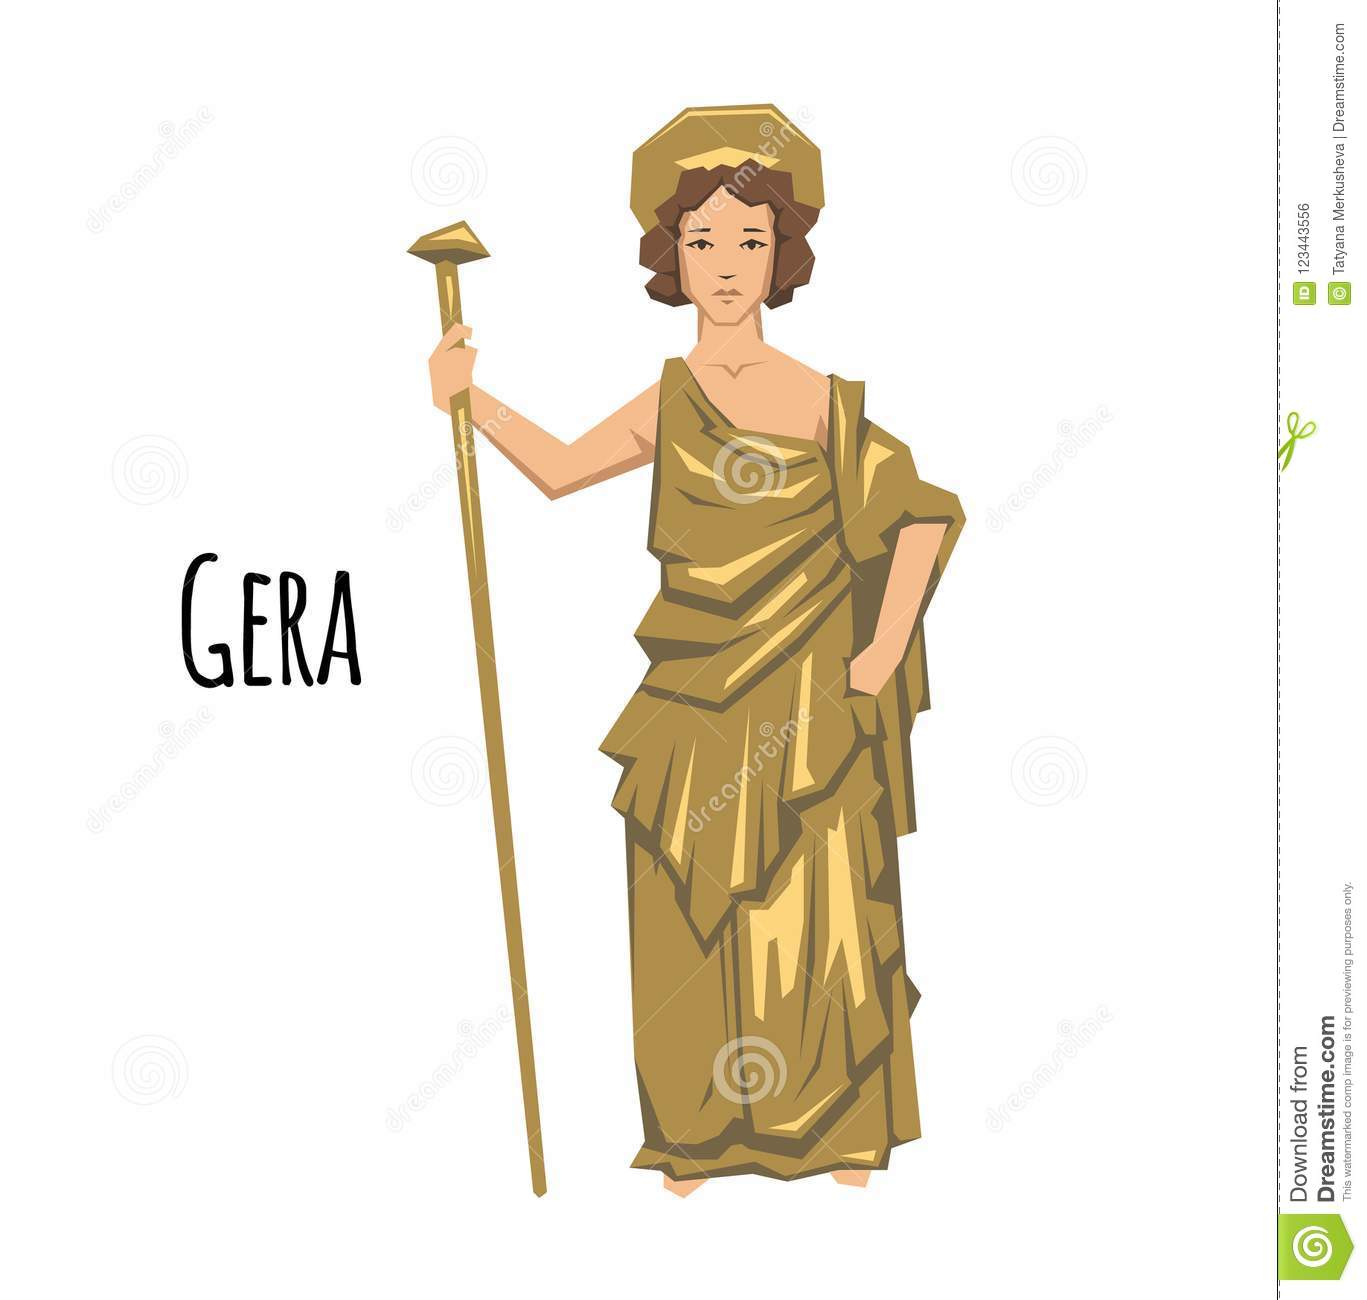 Hera, ancient Greek goddess of Marriage, Mothers and Families. Mythology. Flat vector illustration. on white